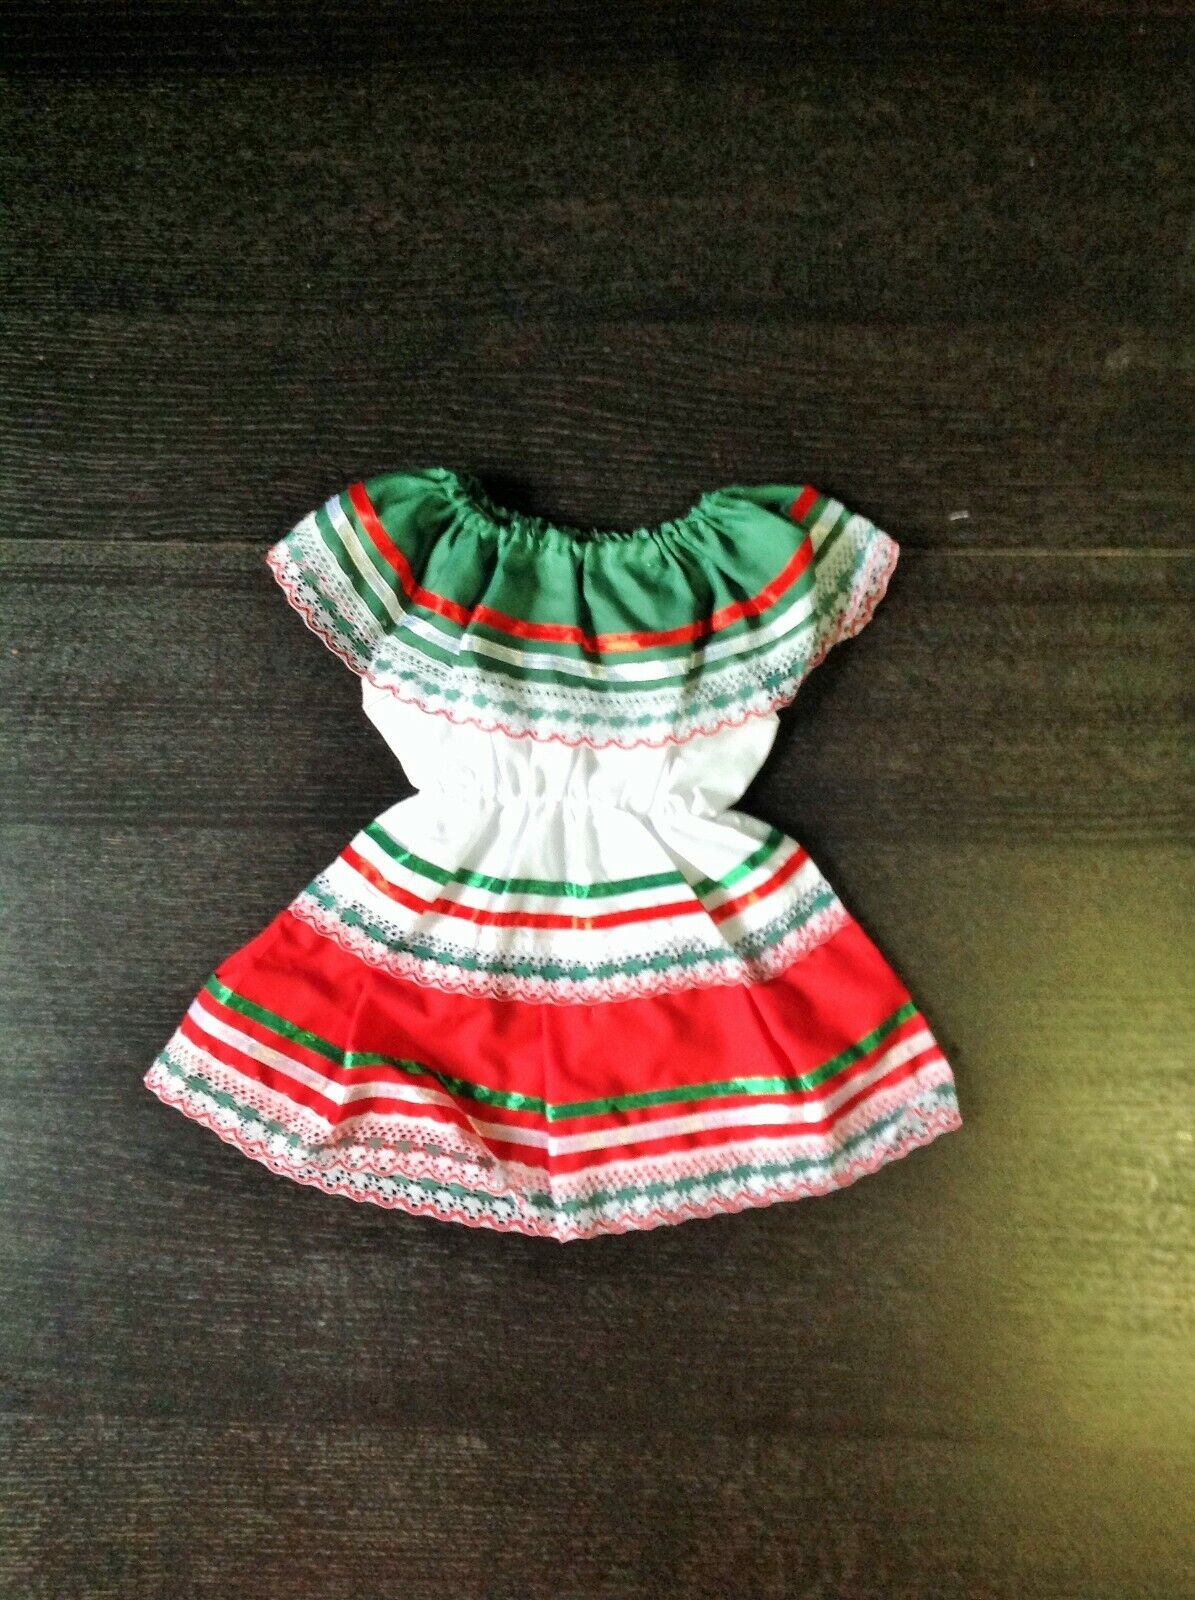 Mexican Baby Dress Traditional Dress Size 6mos-2T For Girls Toddler Dress